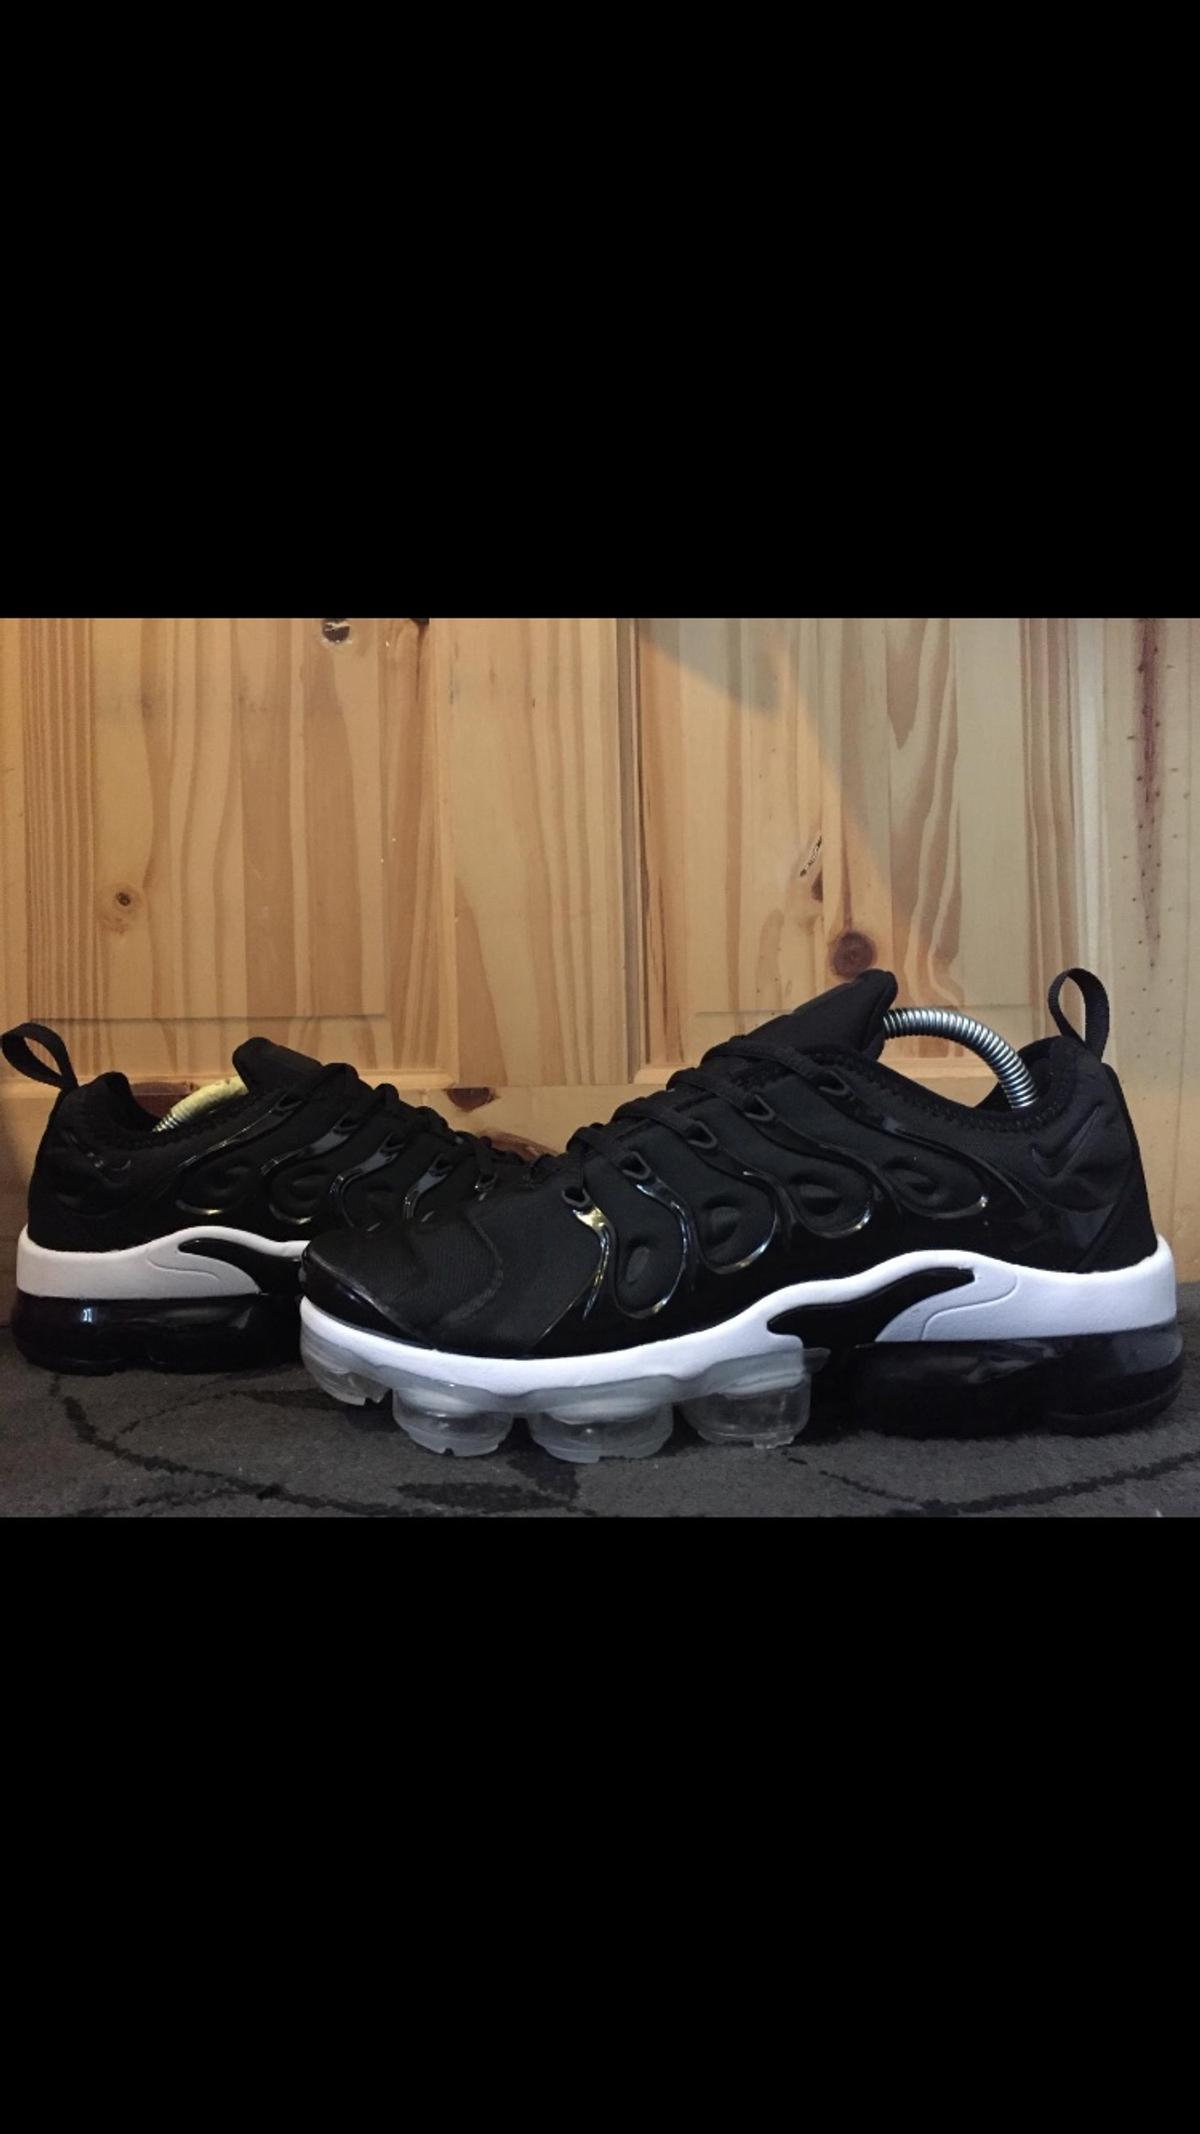 super popular f7103 2a18f Nike Vapormax / Nike Air Max 97 X Vapormax in IG2 London for ...